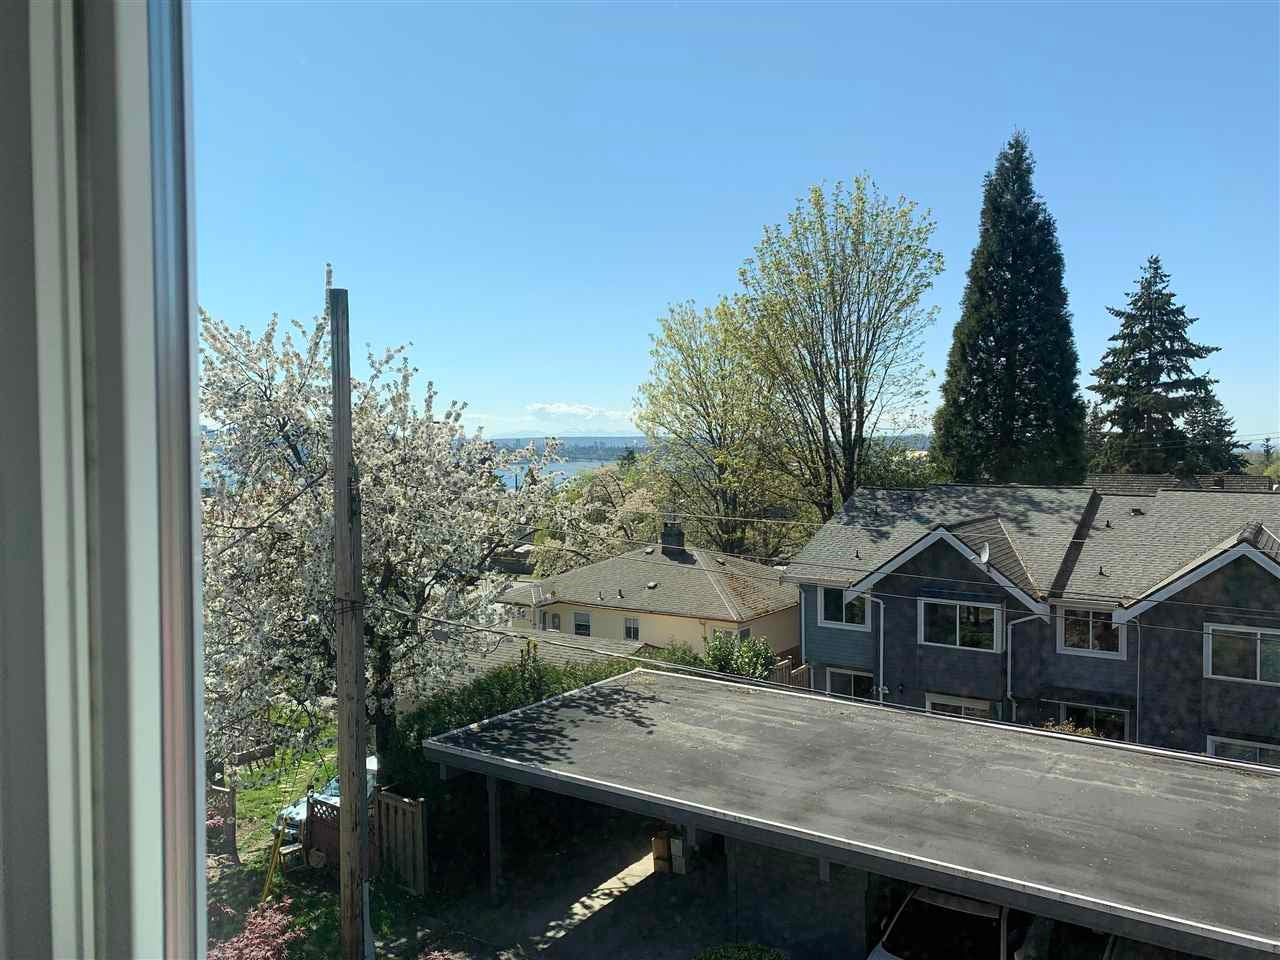 2 230 W 15TH STREET - Central Lonsdale Townhouse for sale, 3 Bedrooms (R2572749) - #27